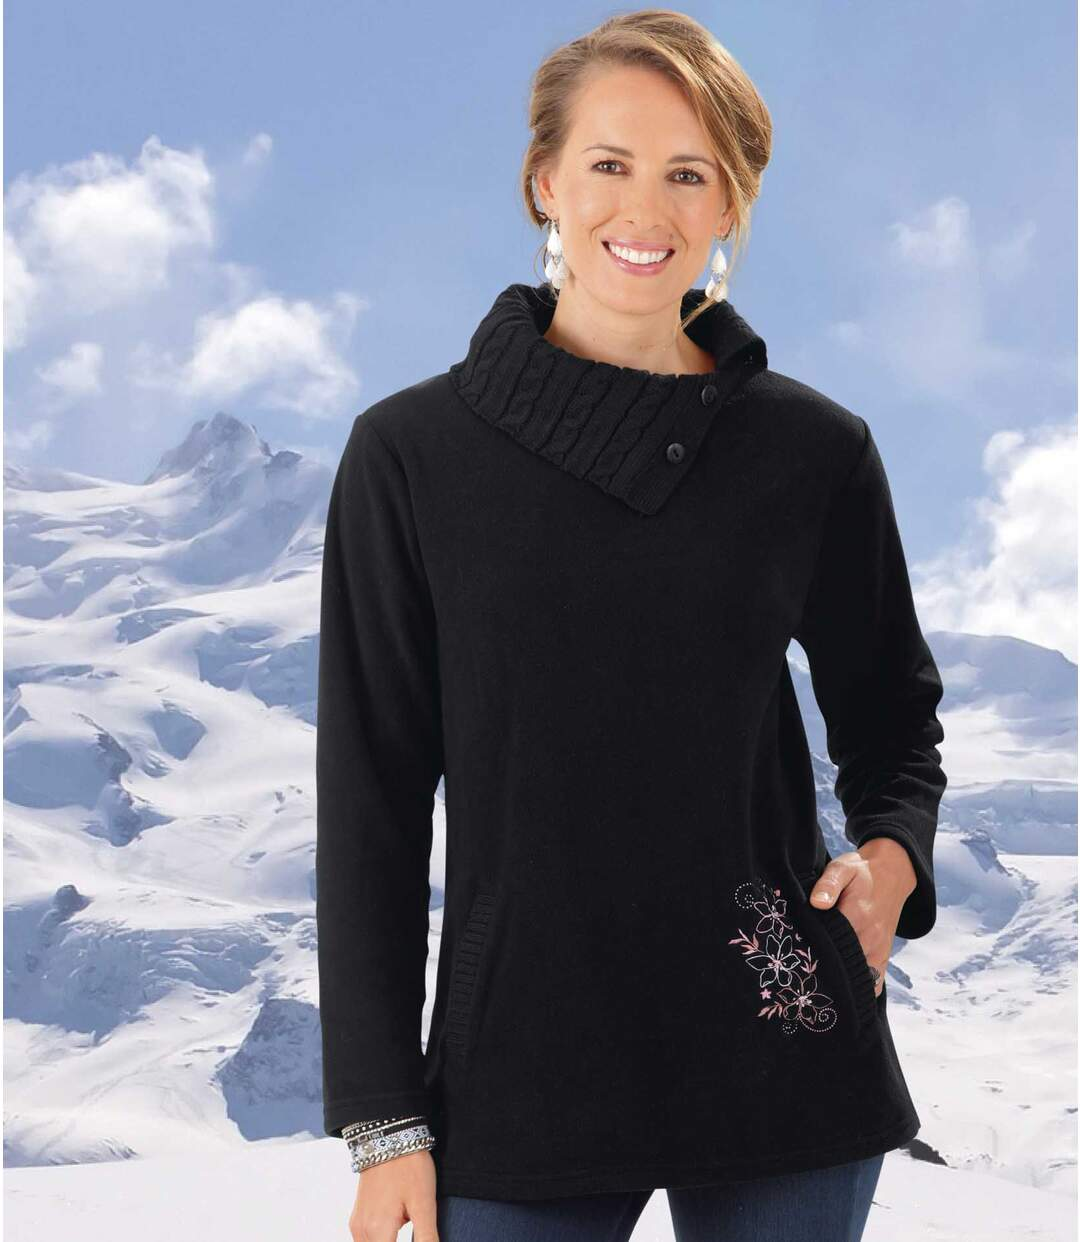 Women's Polar Fleece and Knit Jumper